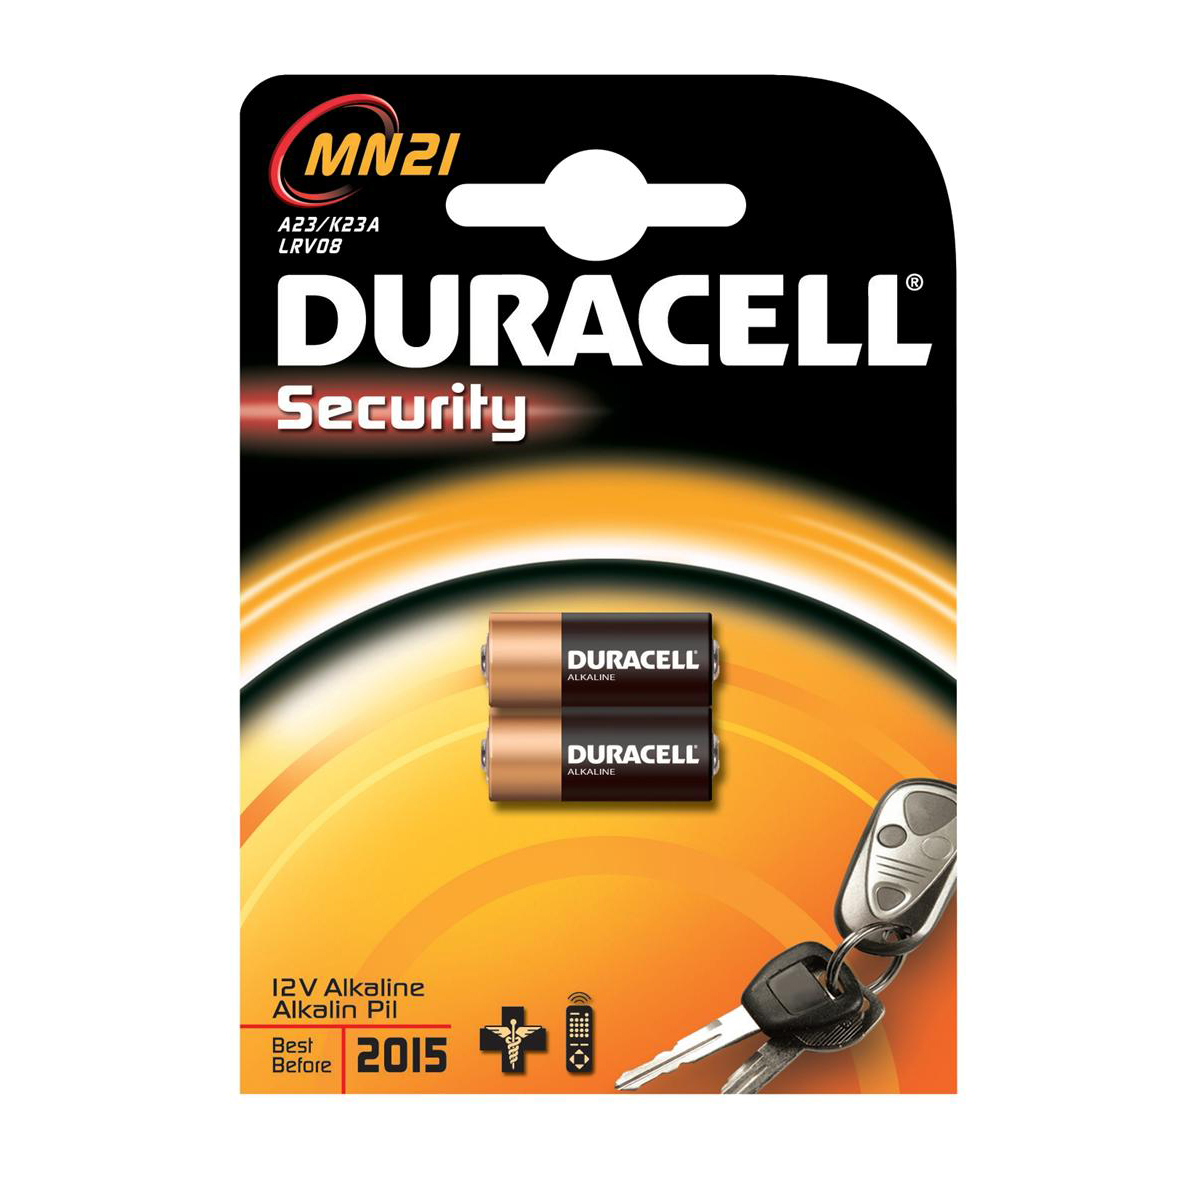 Duracell MN21 Battery Alkaline for Camera Calculator or Pager 1.2V Ref 75072670 Pack 2